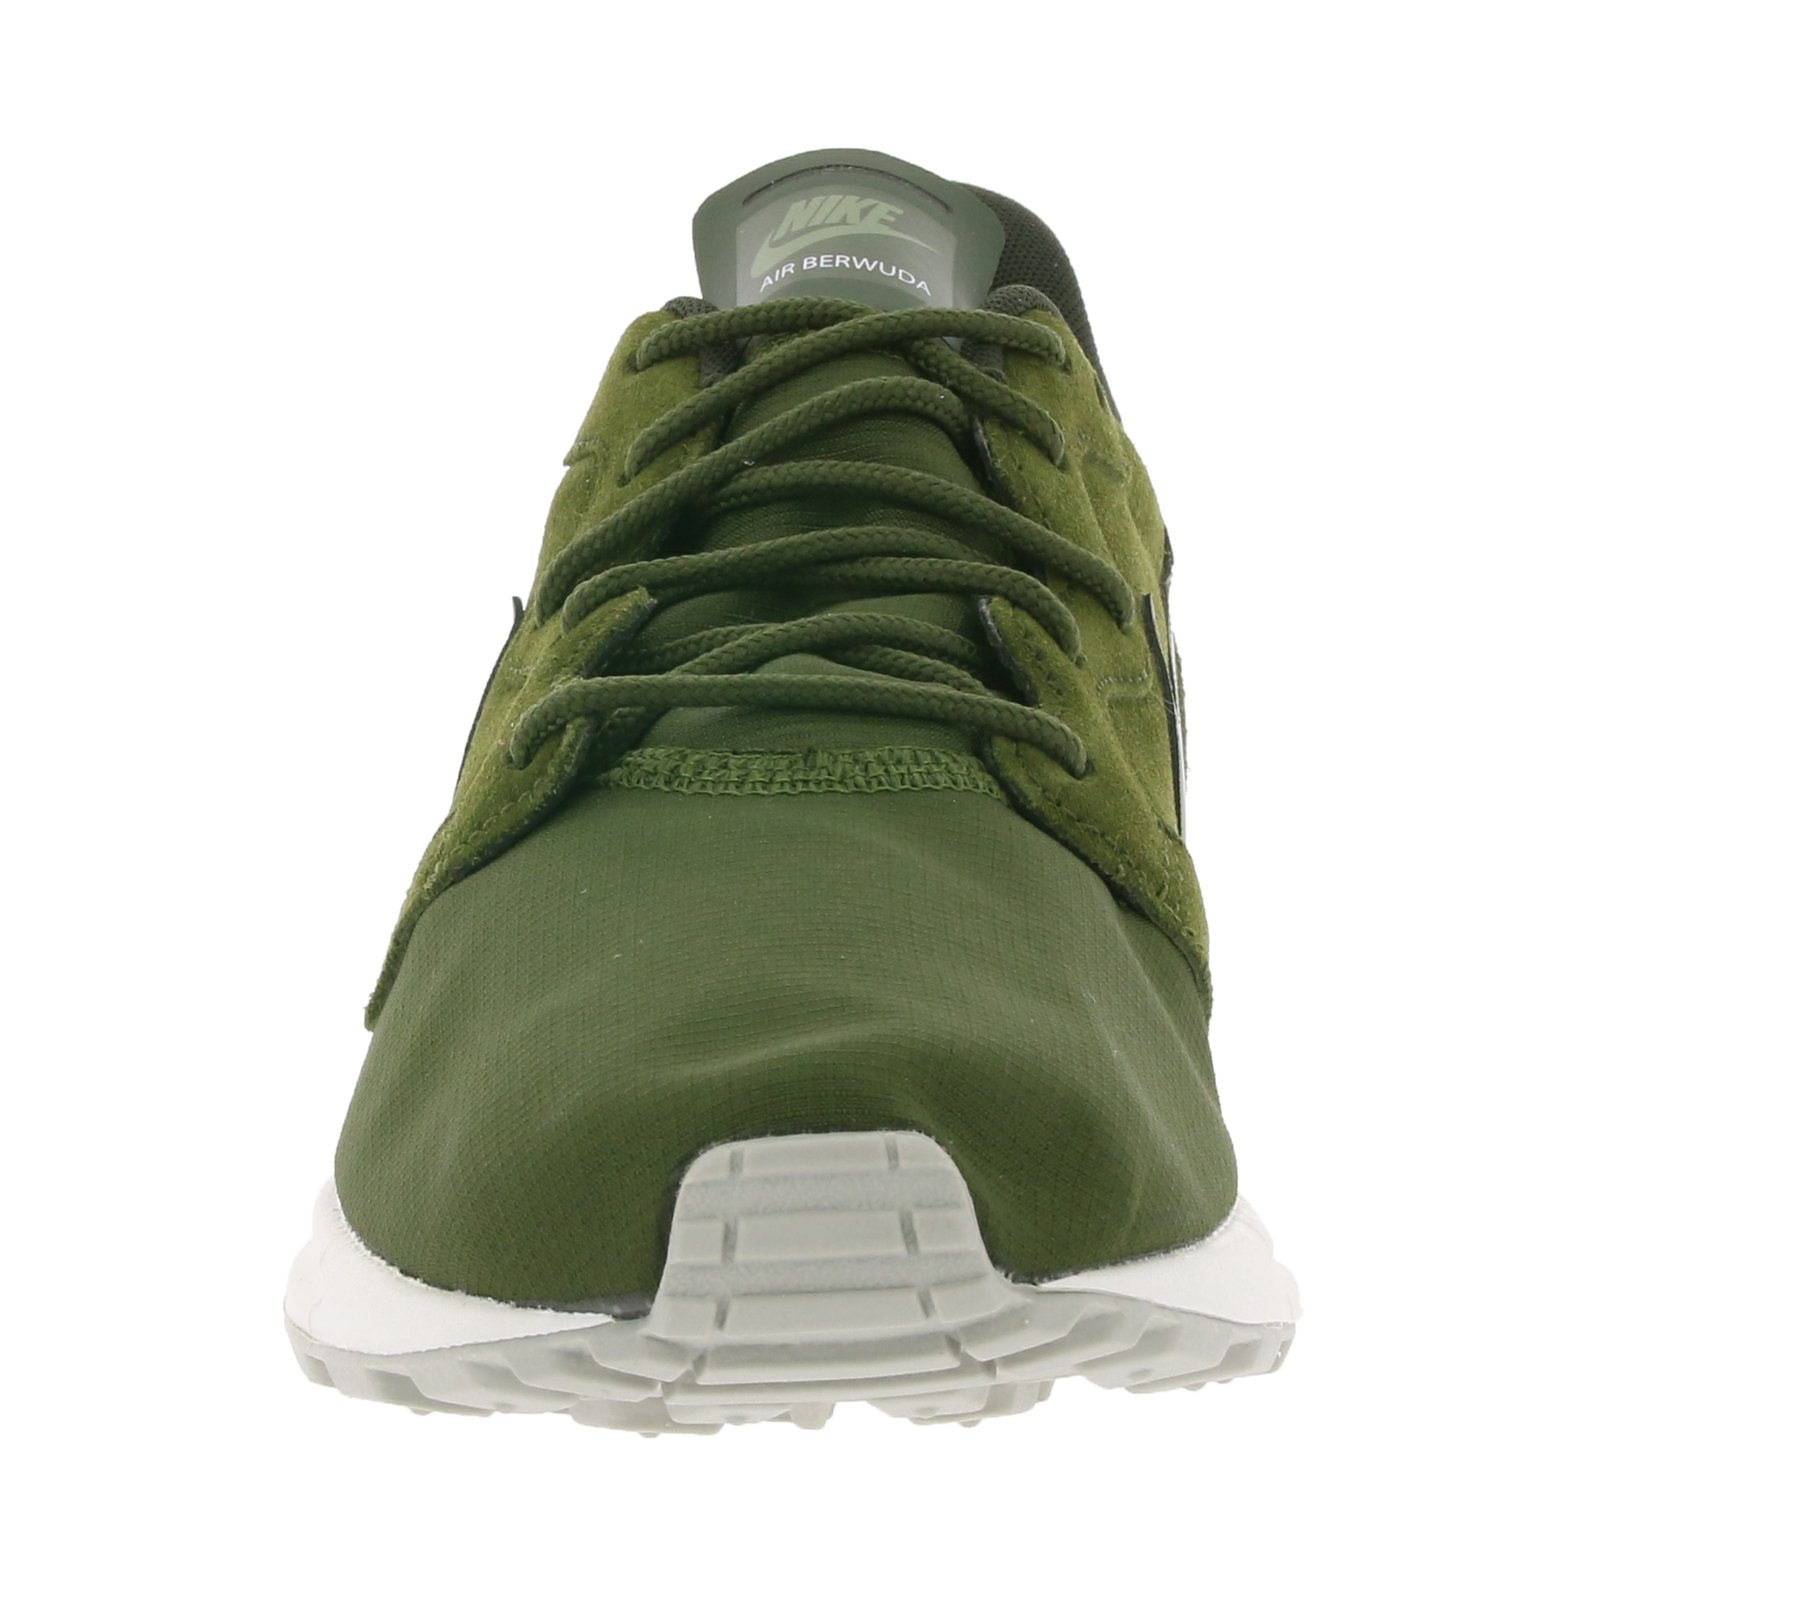 Cerebro juego Fiesta  NIKE Air Berwuda Premium Sneaker green 8- Buy Online in Belize at Desertcart